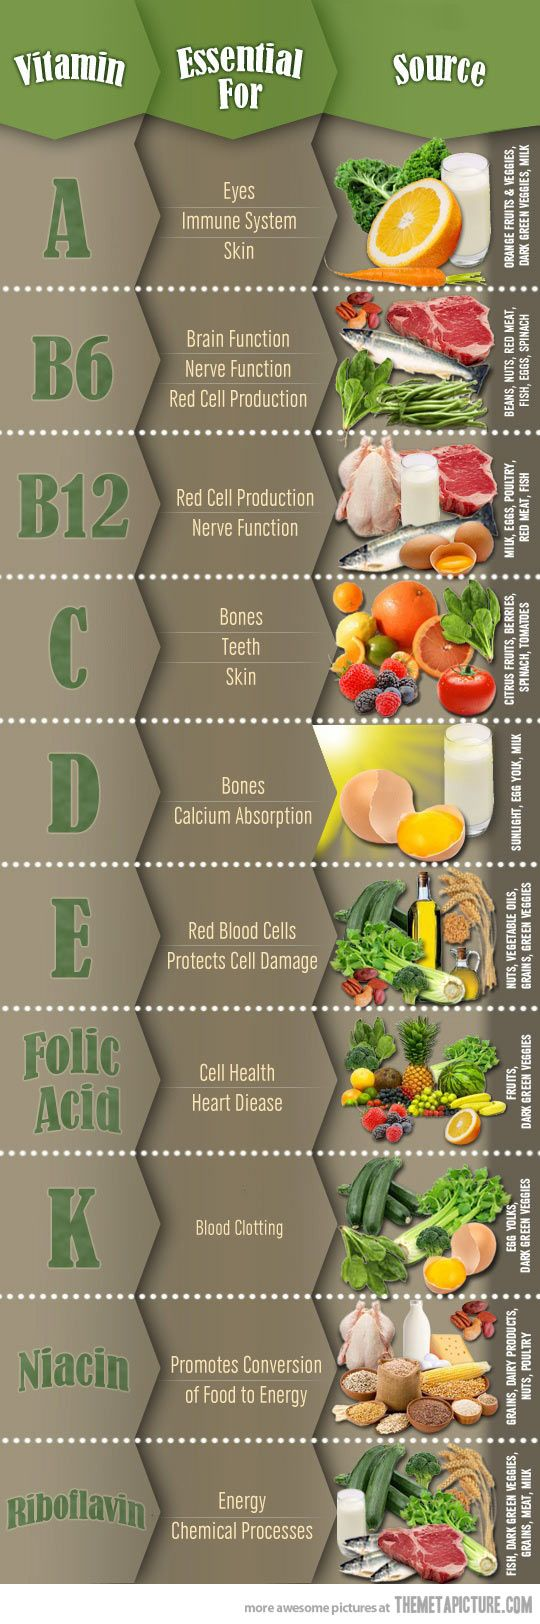 What vitamins are good for - Health - Health & Fitness - Health &…